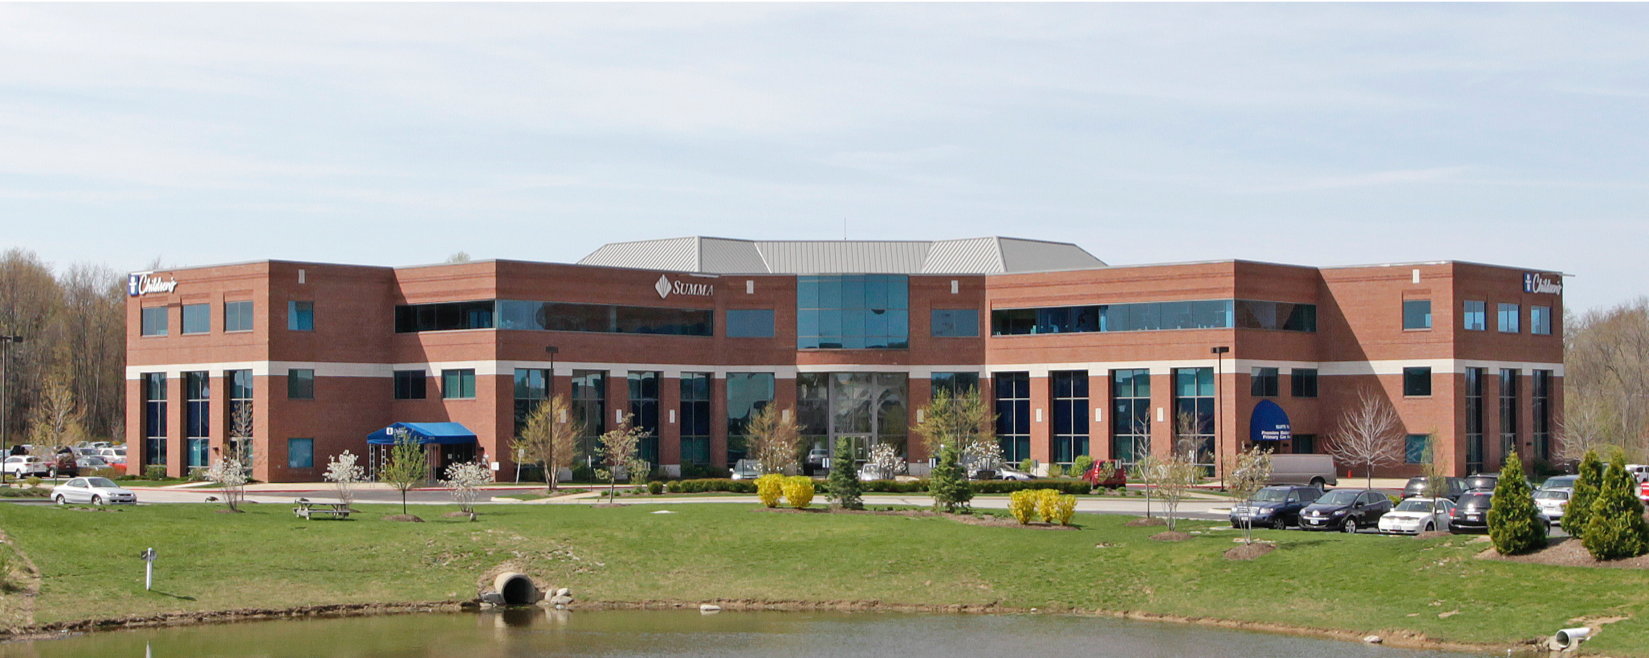 Crescendo Engaged By Welltower To Lease Prominent Northeast Ohio Medical Office Buildings